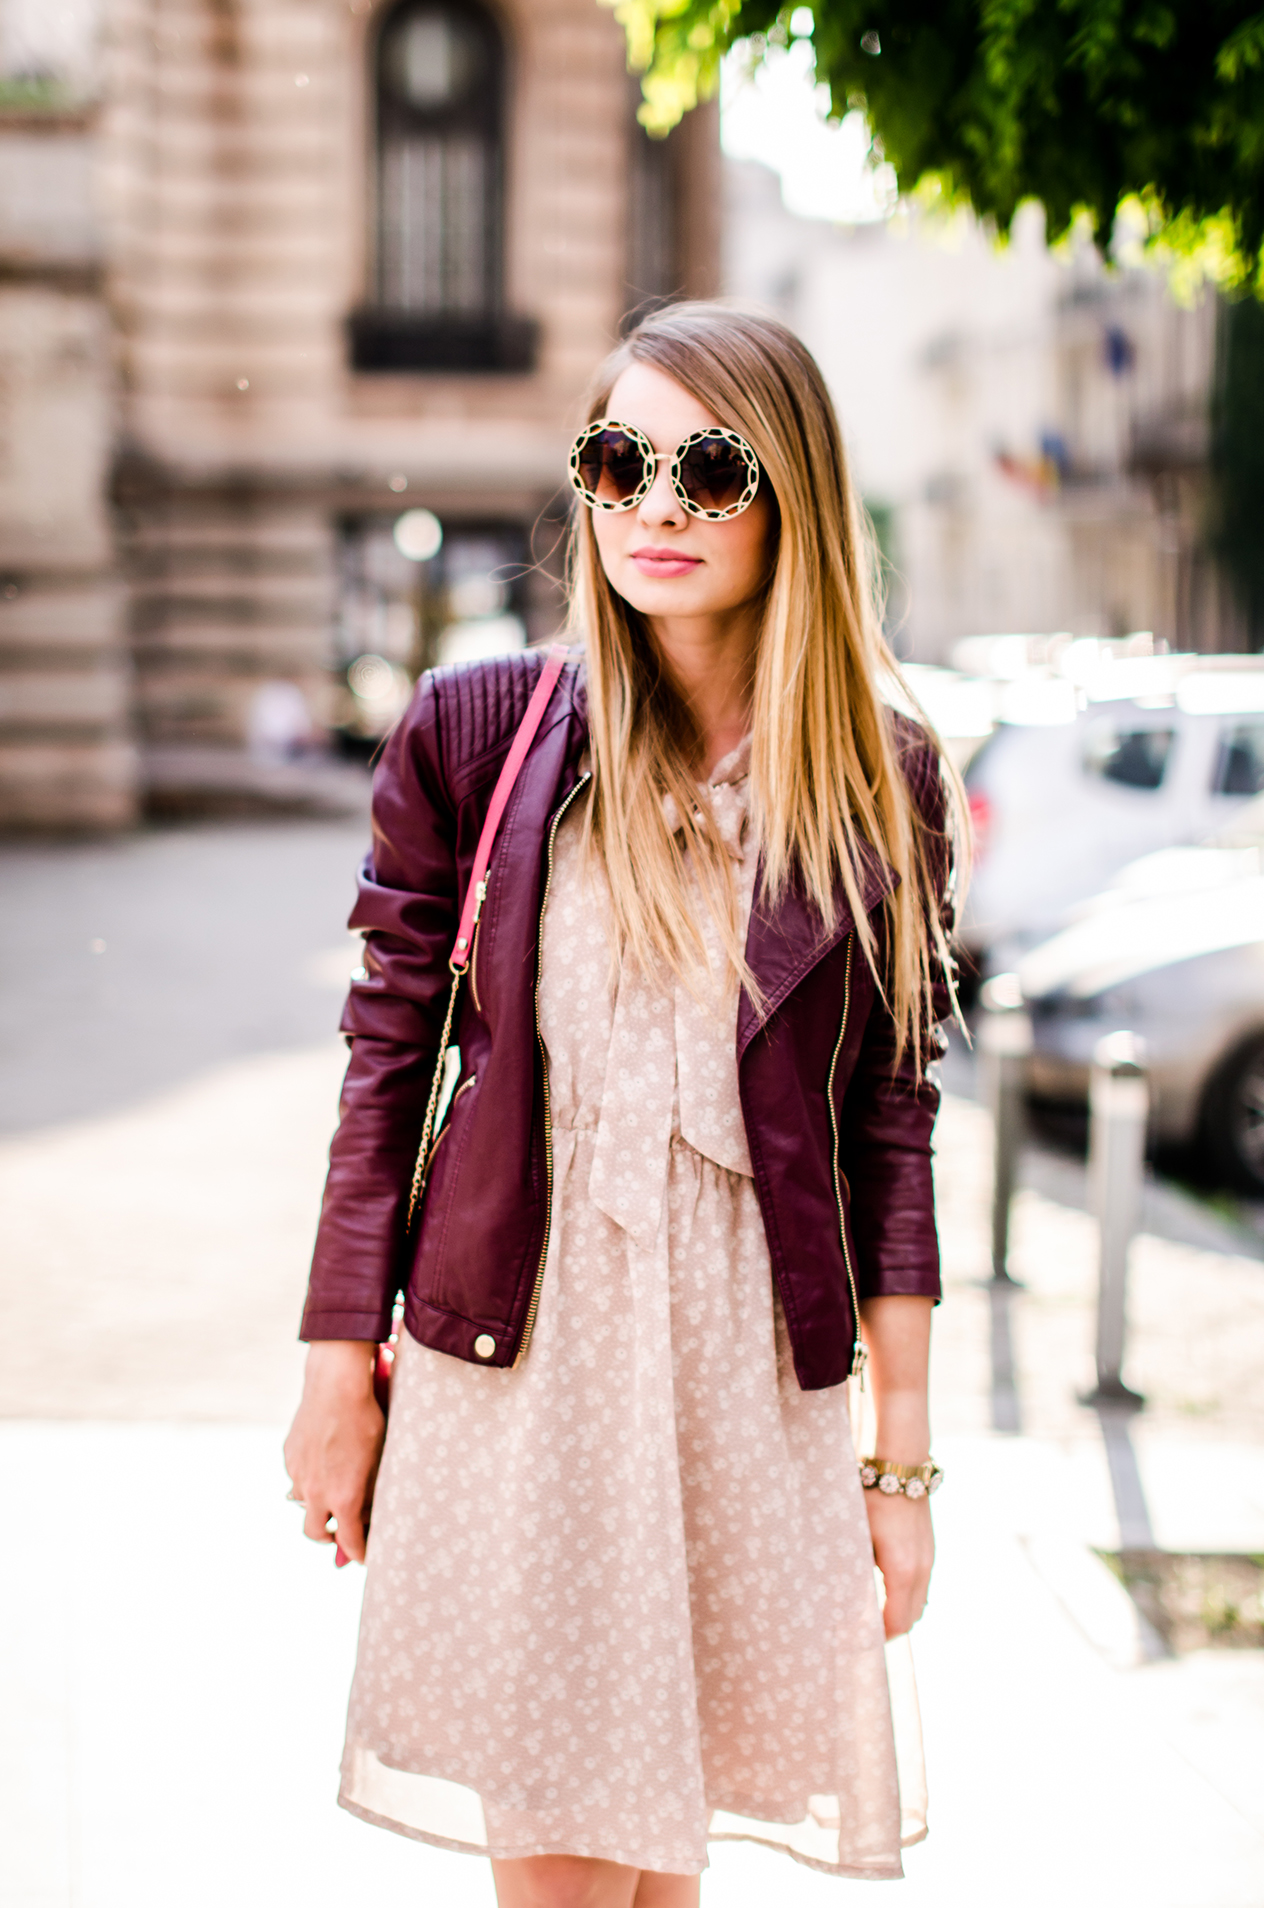 feminine-dress-bonprix-burgundy-jacket-outfit-pink-wish (1)